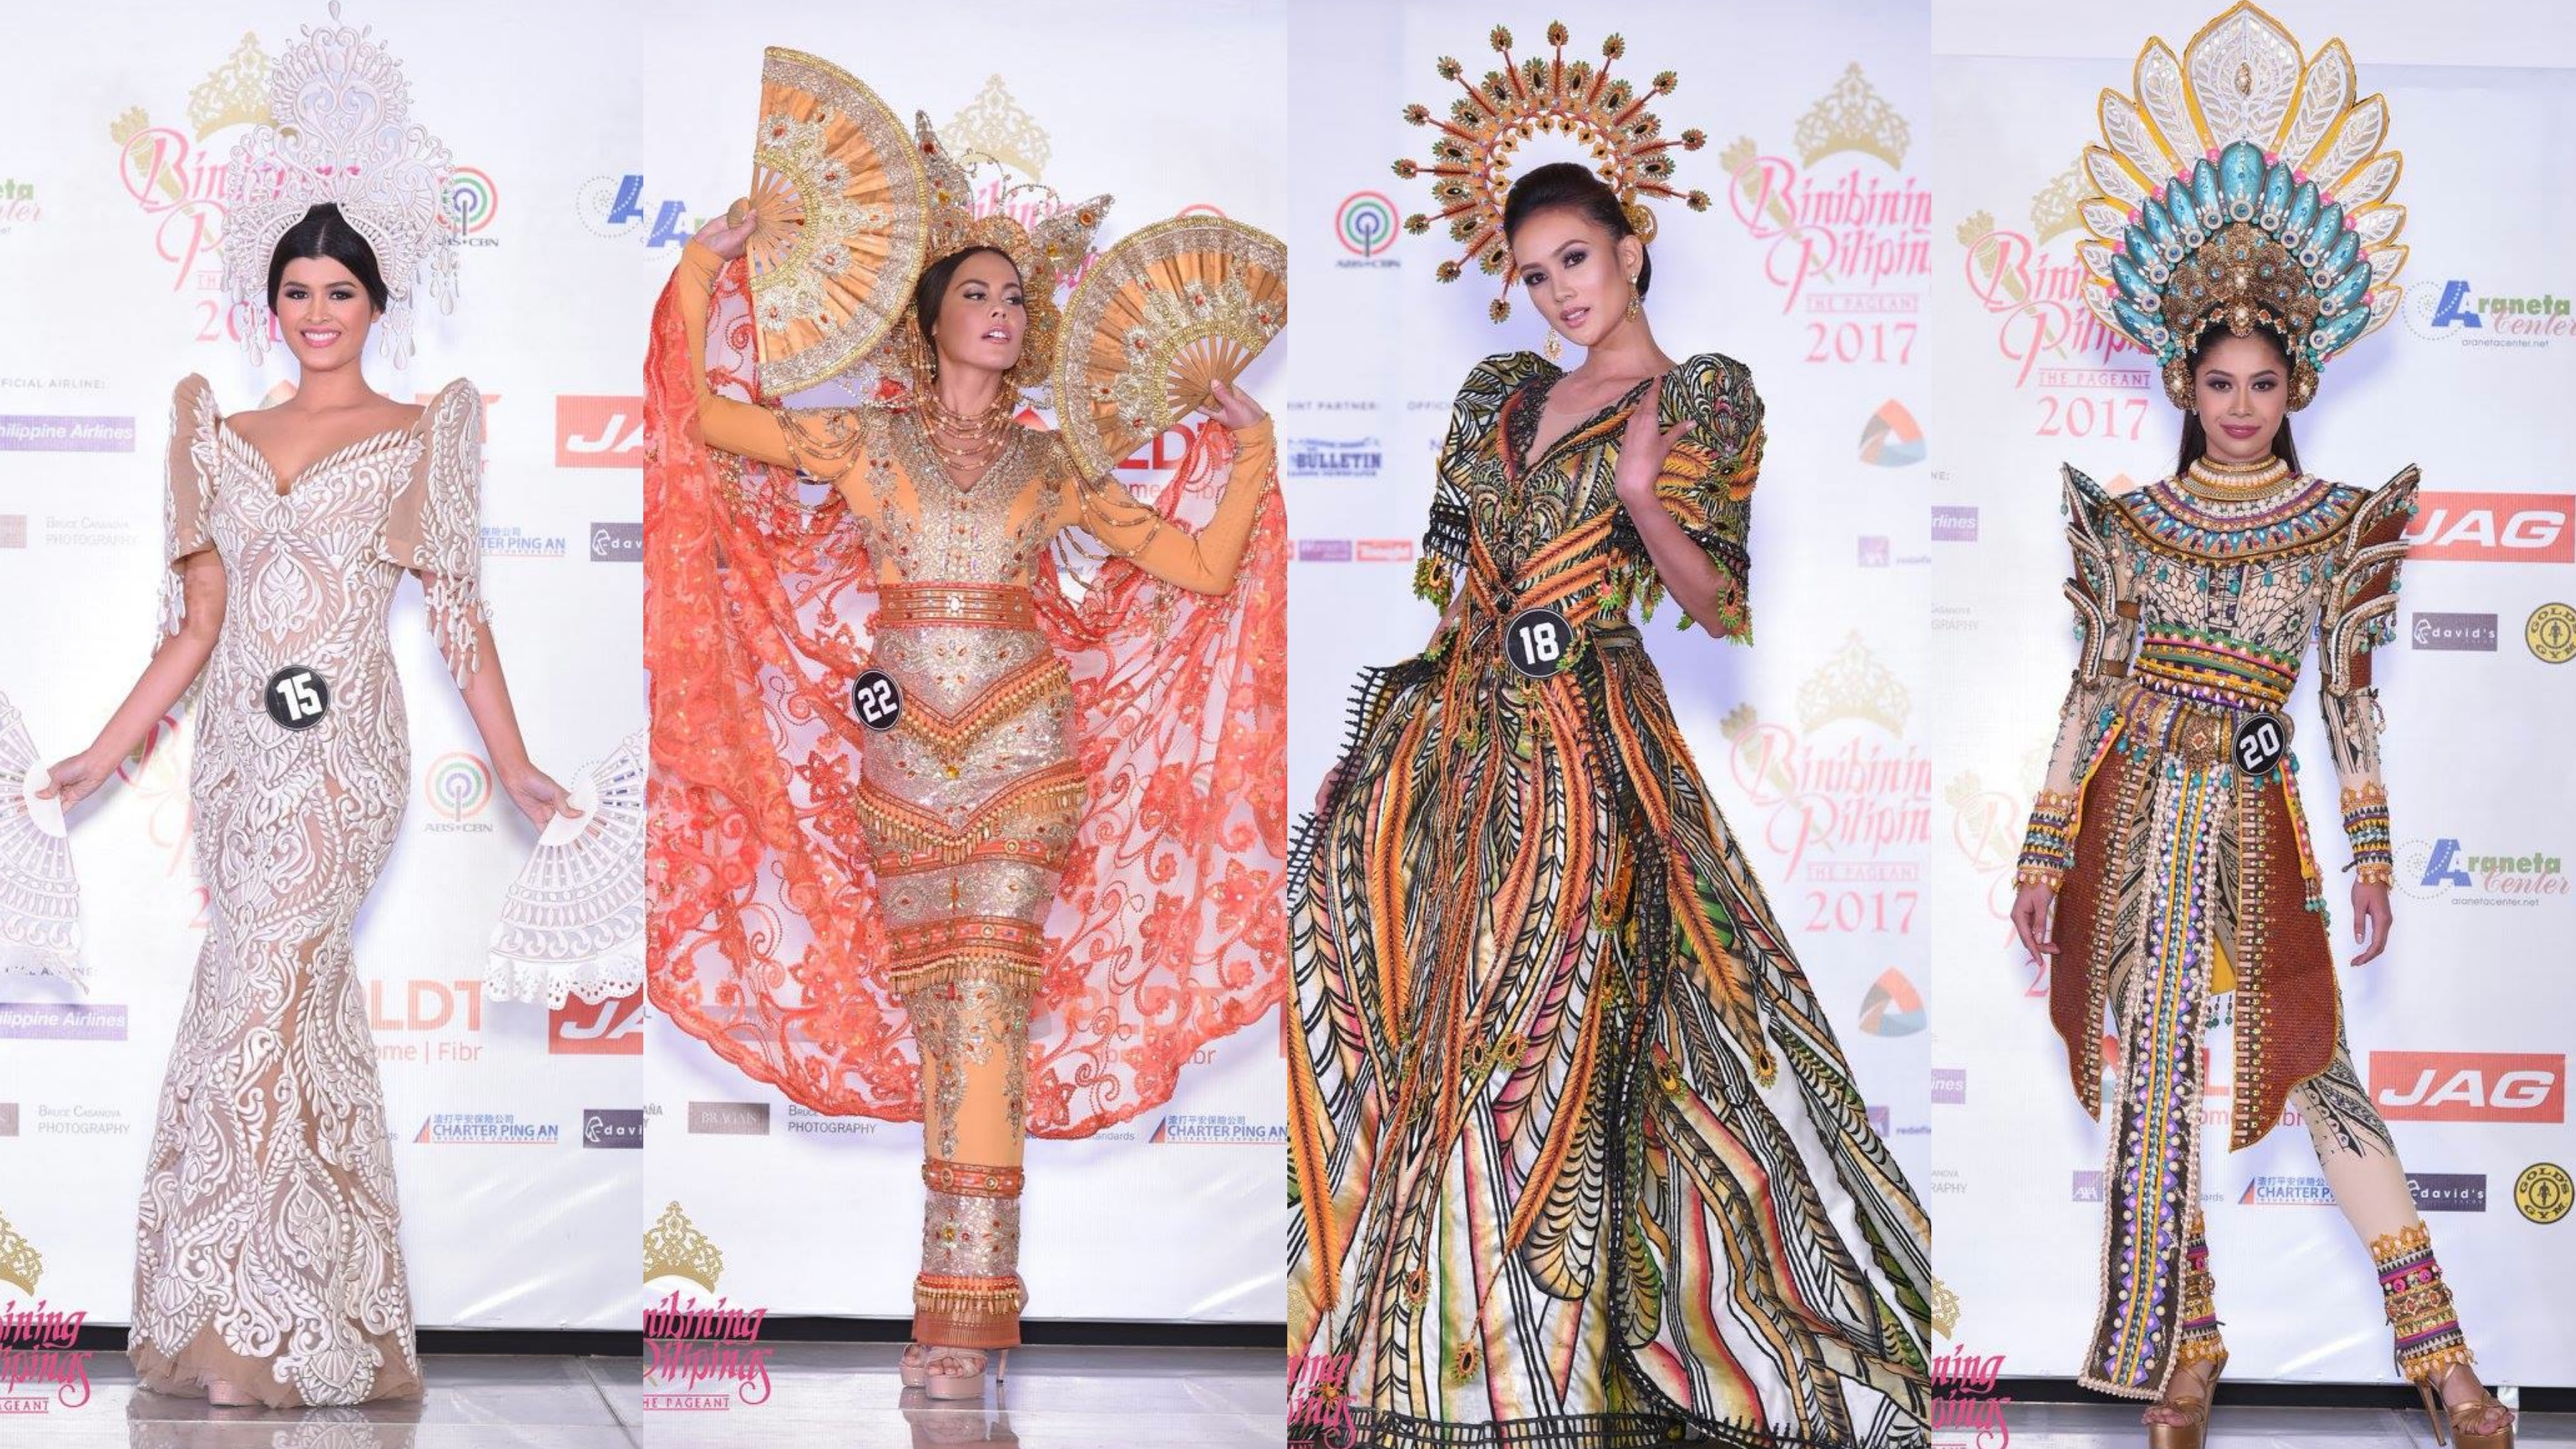 In Photos Bb Pilipinas 2017 Official Top 10 National Costumes